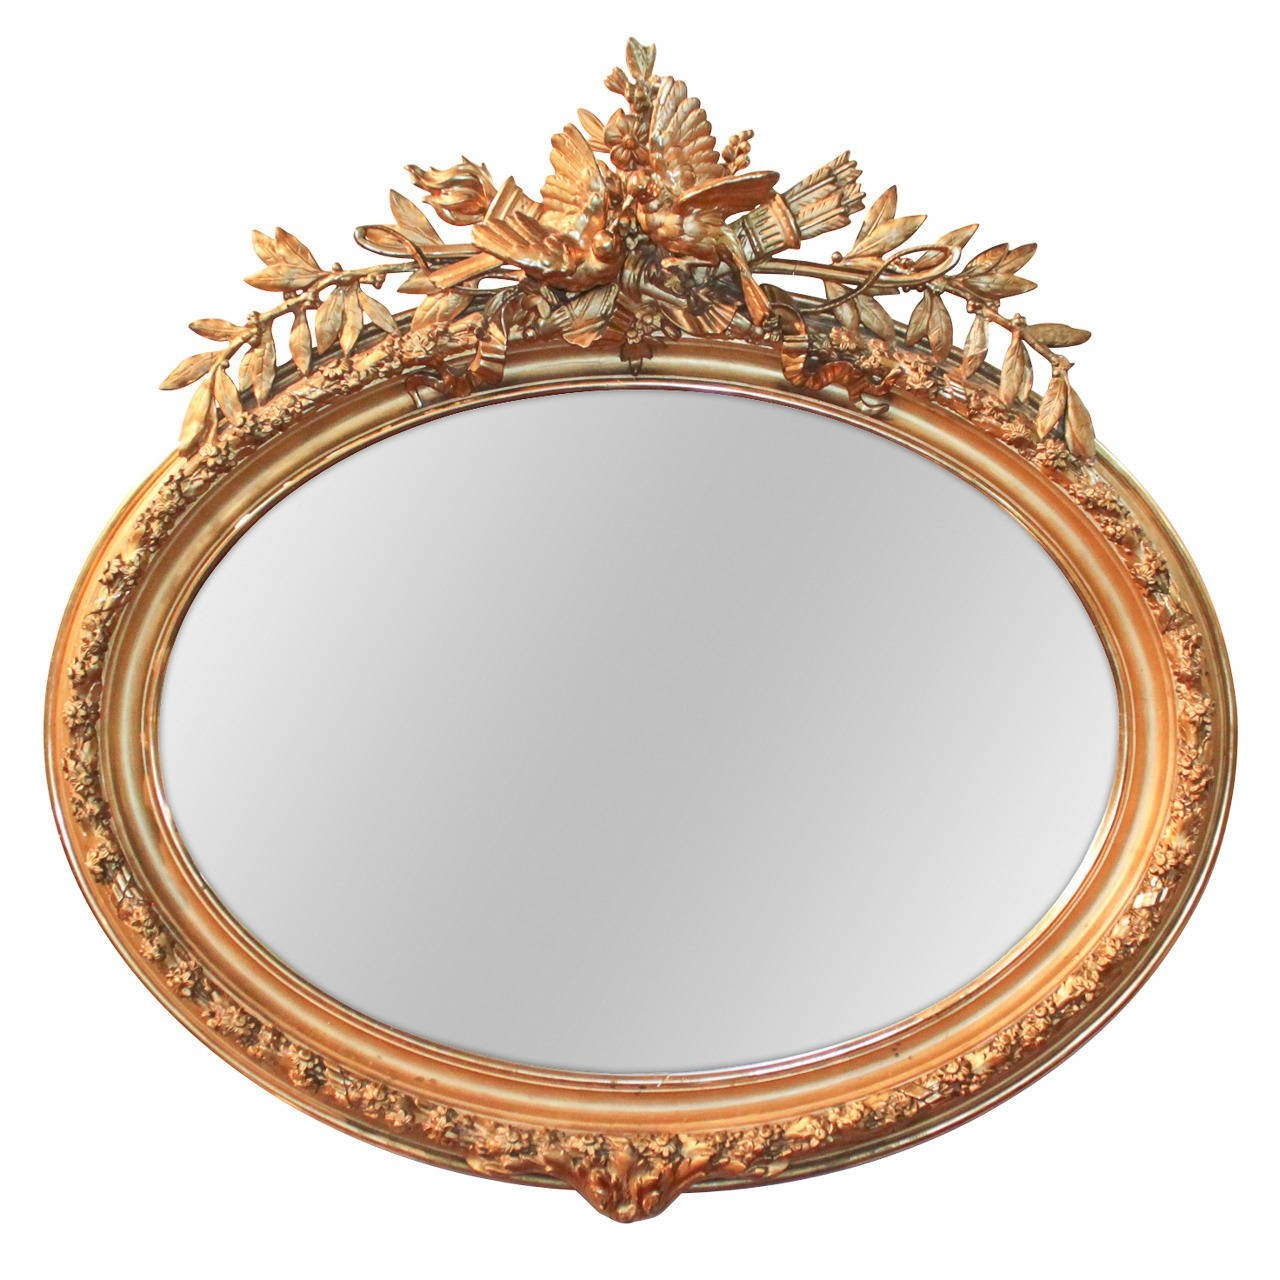 19th Century French Louis Xvi Oval Gilt Mirror For Sale At 1stdibs In Oval French Mirror (Image 3 of 15)